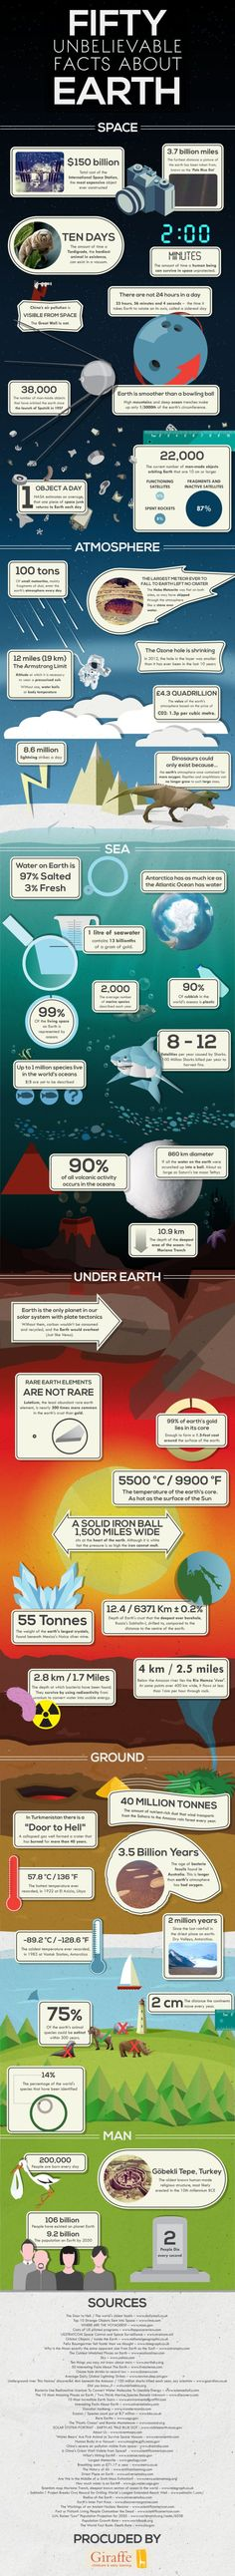 Fifty Unbelievable Facts About Earth [INFOGRAPHIC]